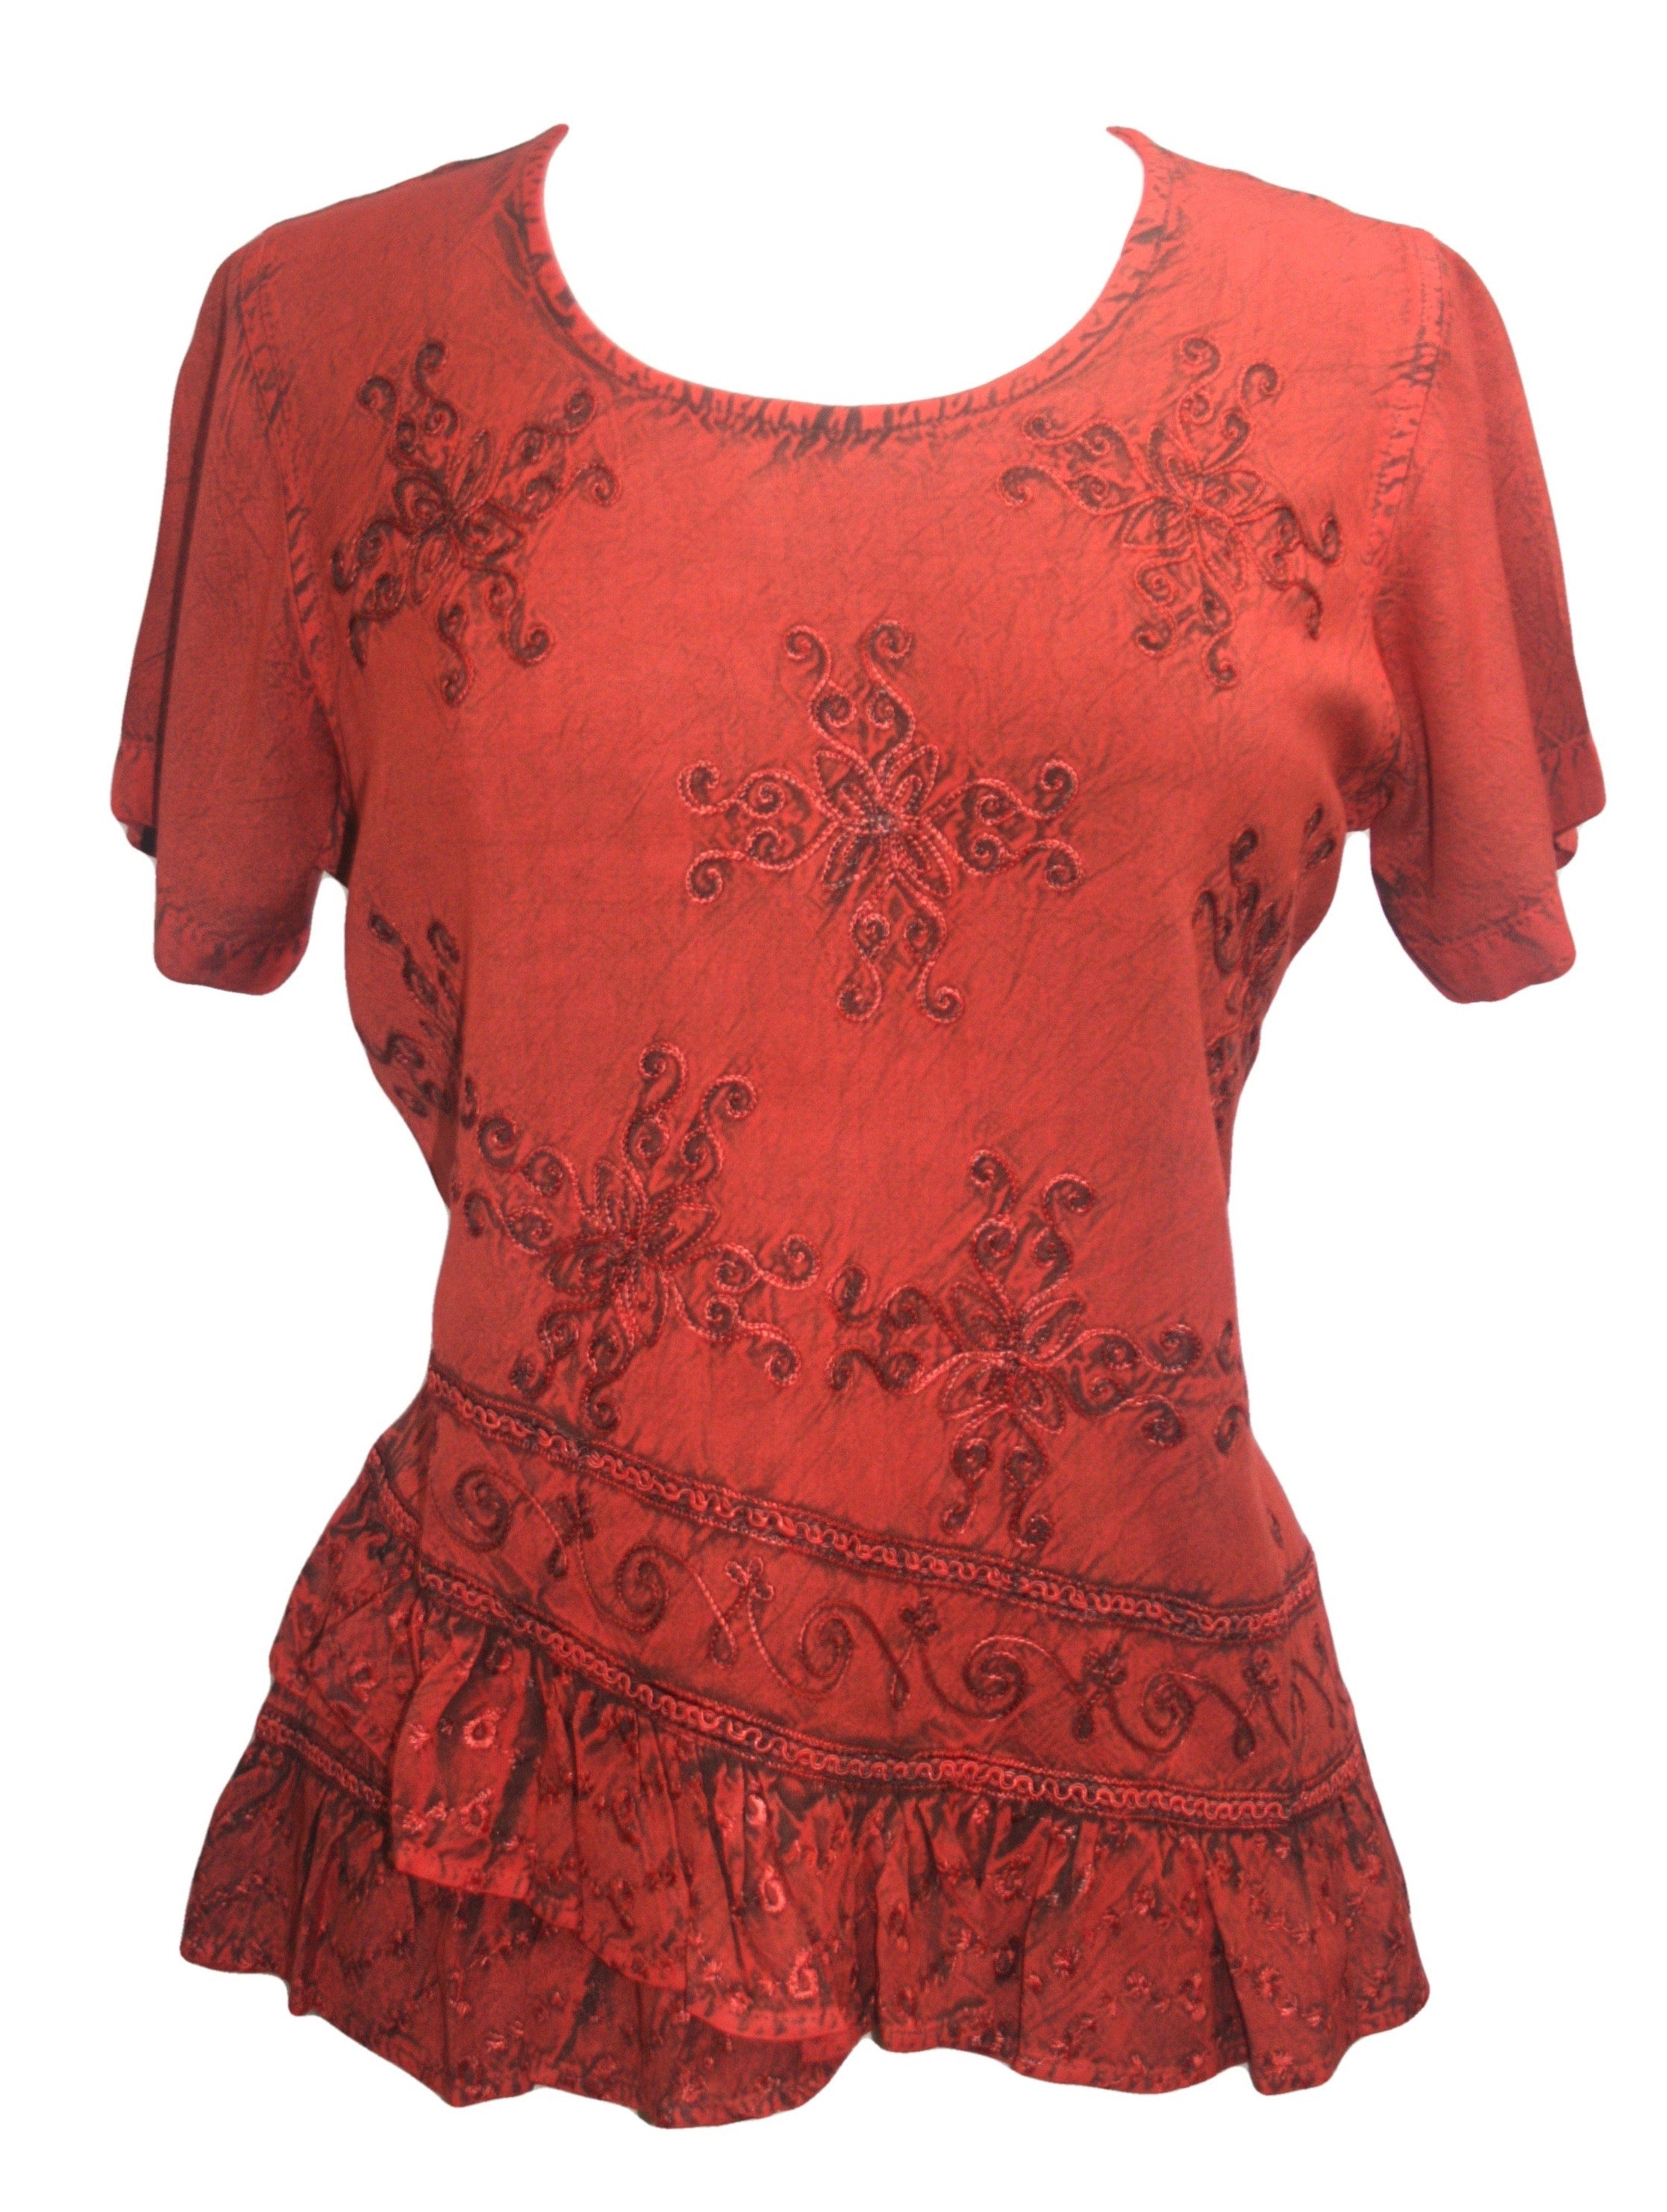 Medieval Renaissance Gypsy Ruffle Cross Blouse - Agan Traders, B Red